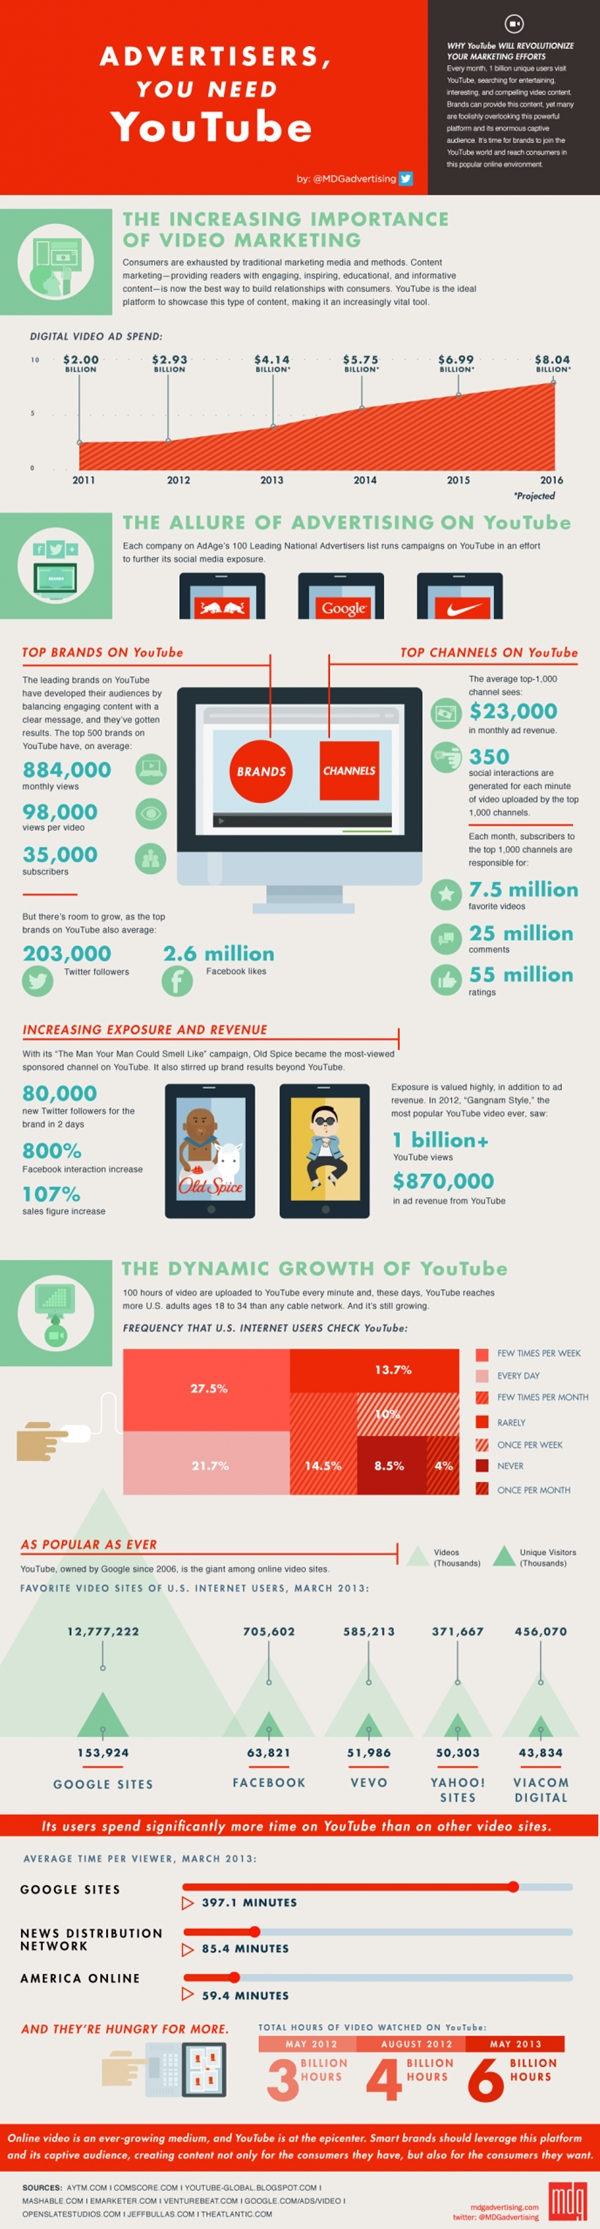 Why Online Marketers Need YouTube